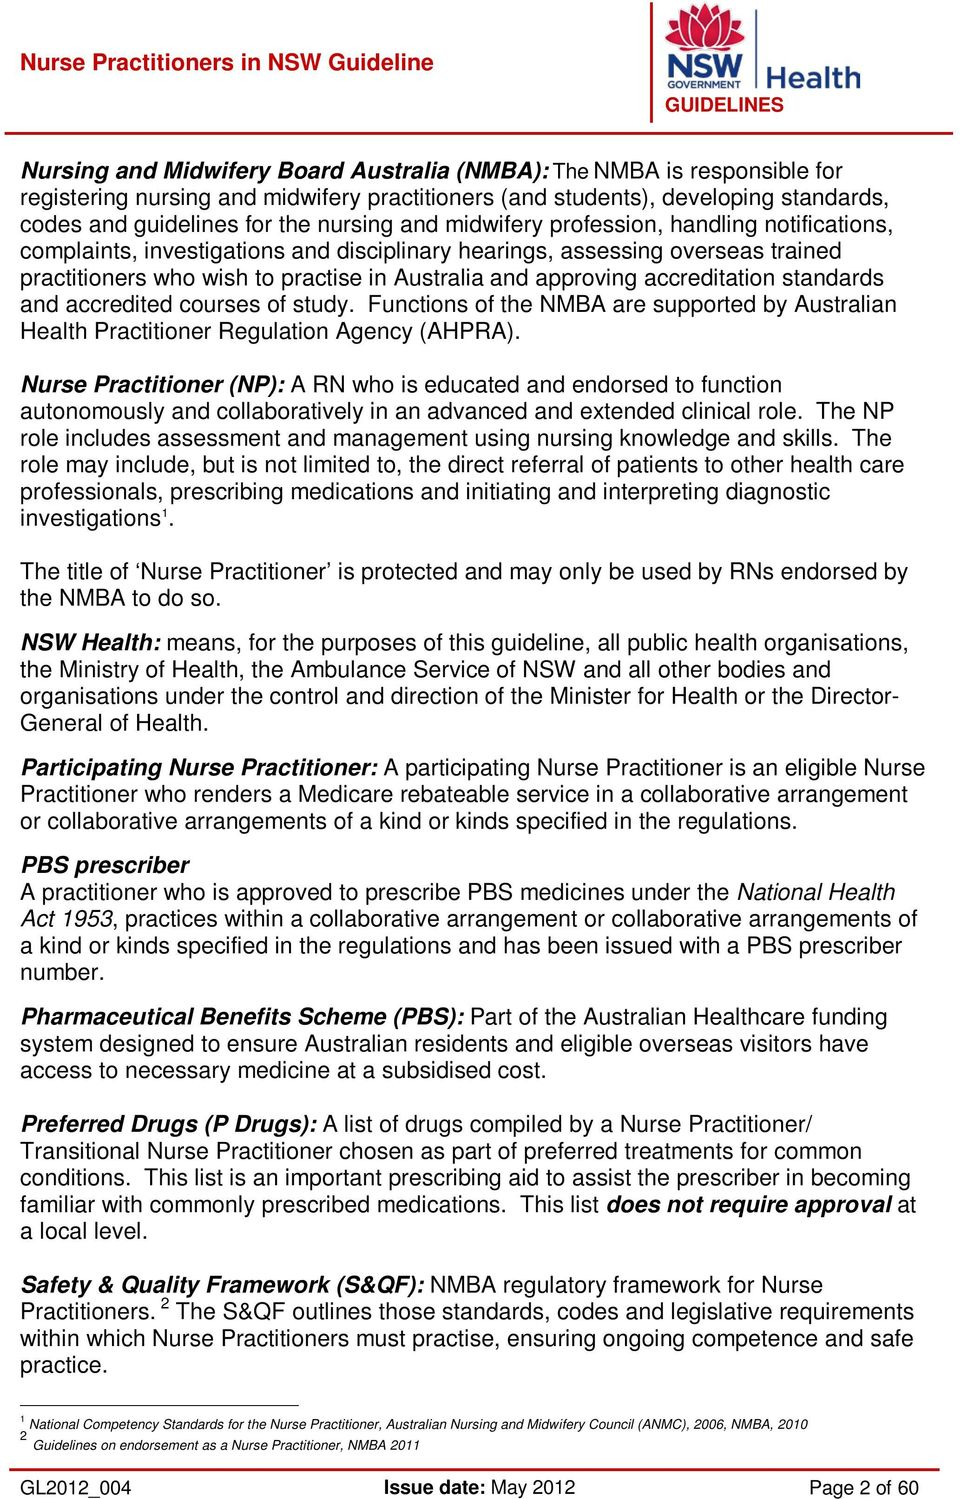 accreditation standards and accredited courses of study. Functions of the NMBA are supported by Australian Health Practitioner Regulation Agency (AHPRA).